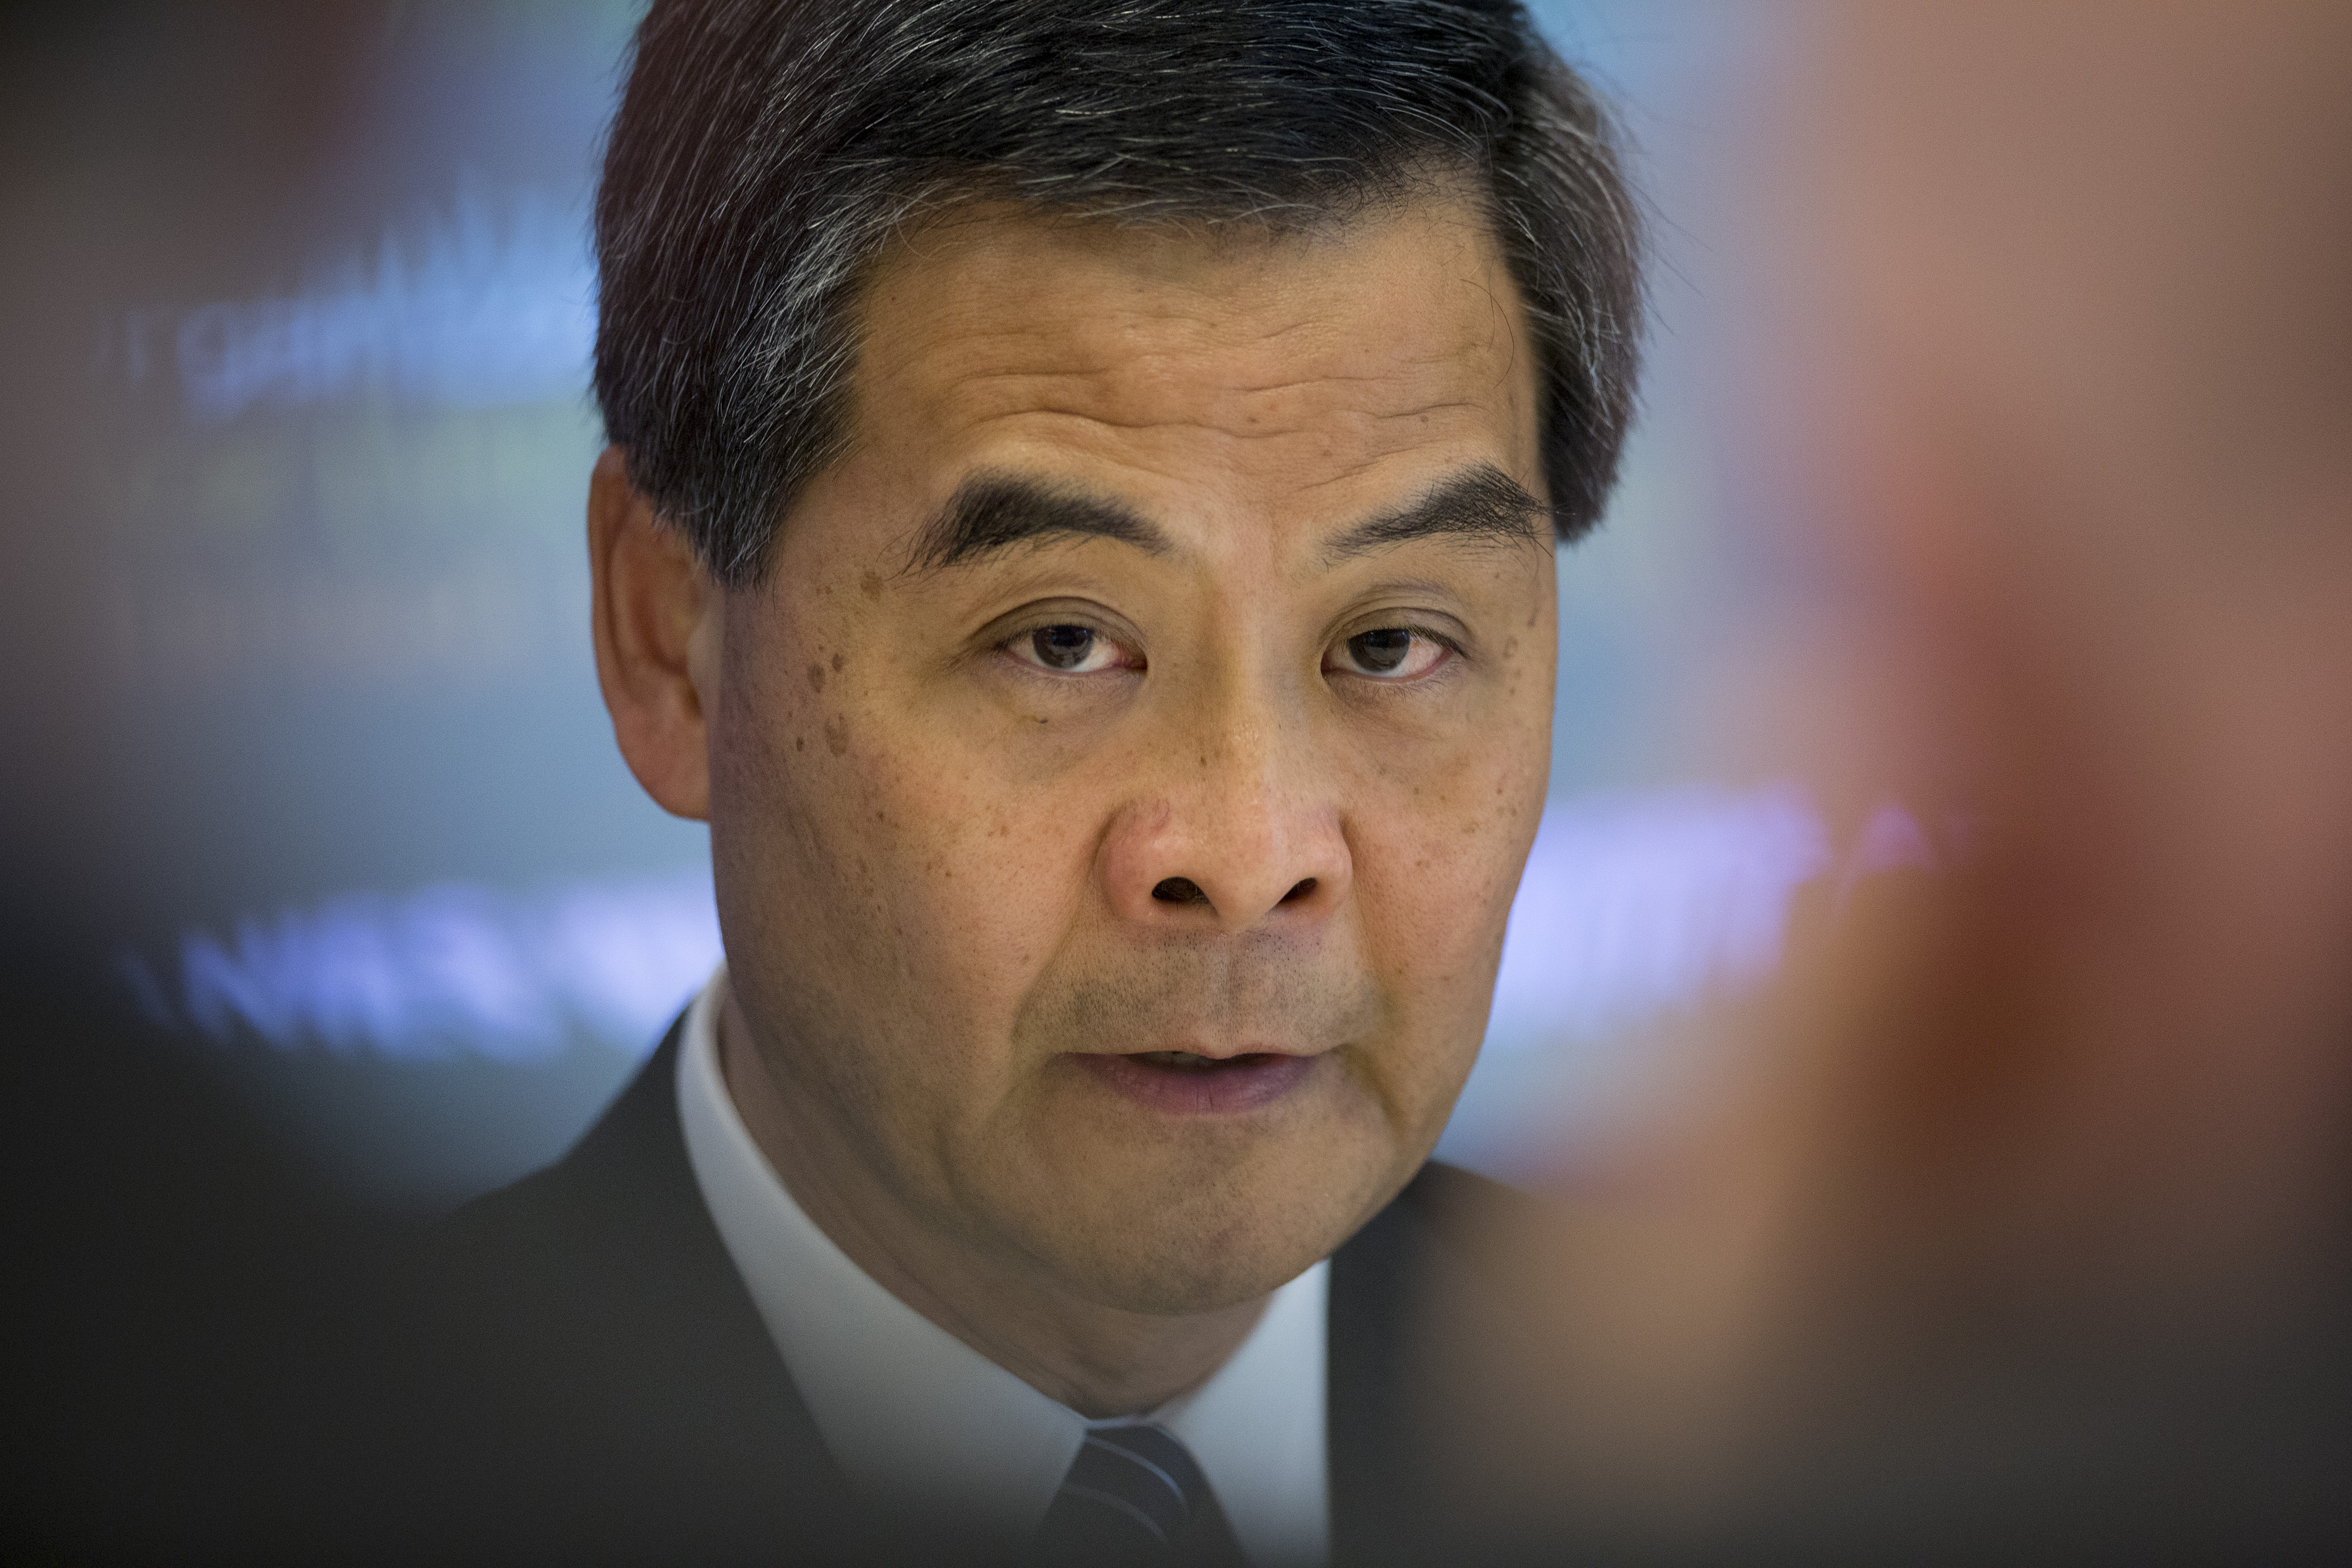 Leung Chun-ying, Hong Kong's chief executive, speaks during an interview in New York, U.S., on Wednesday, June 12, 2013.